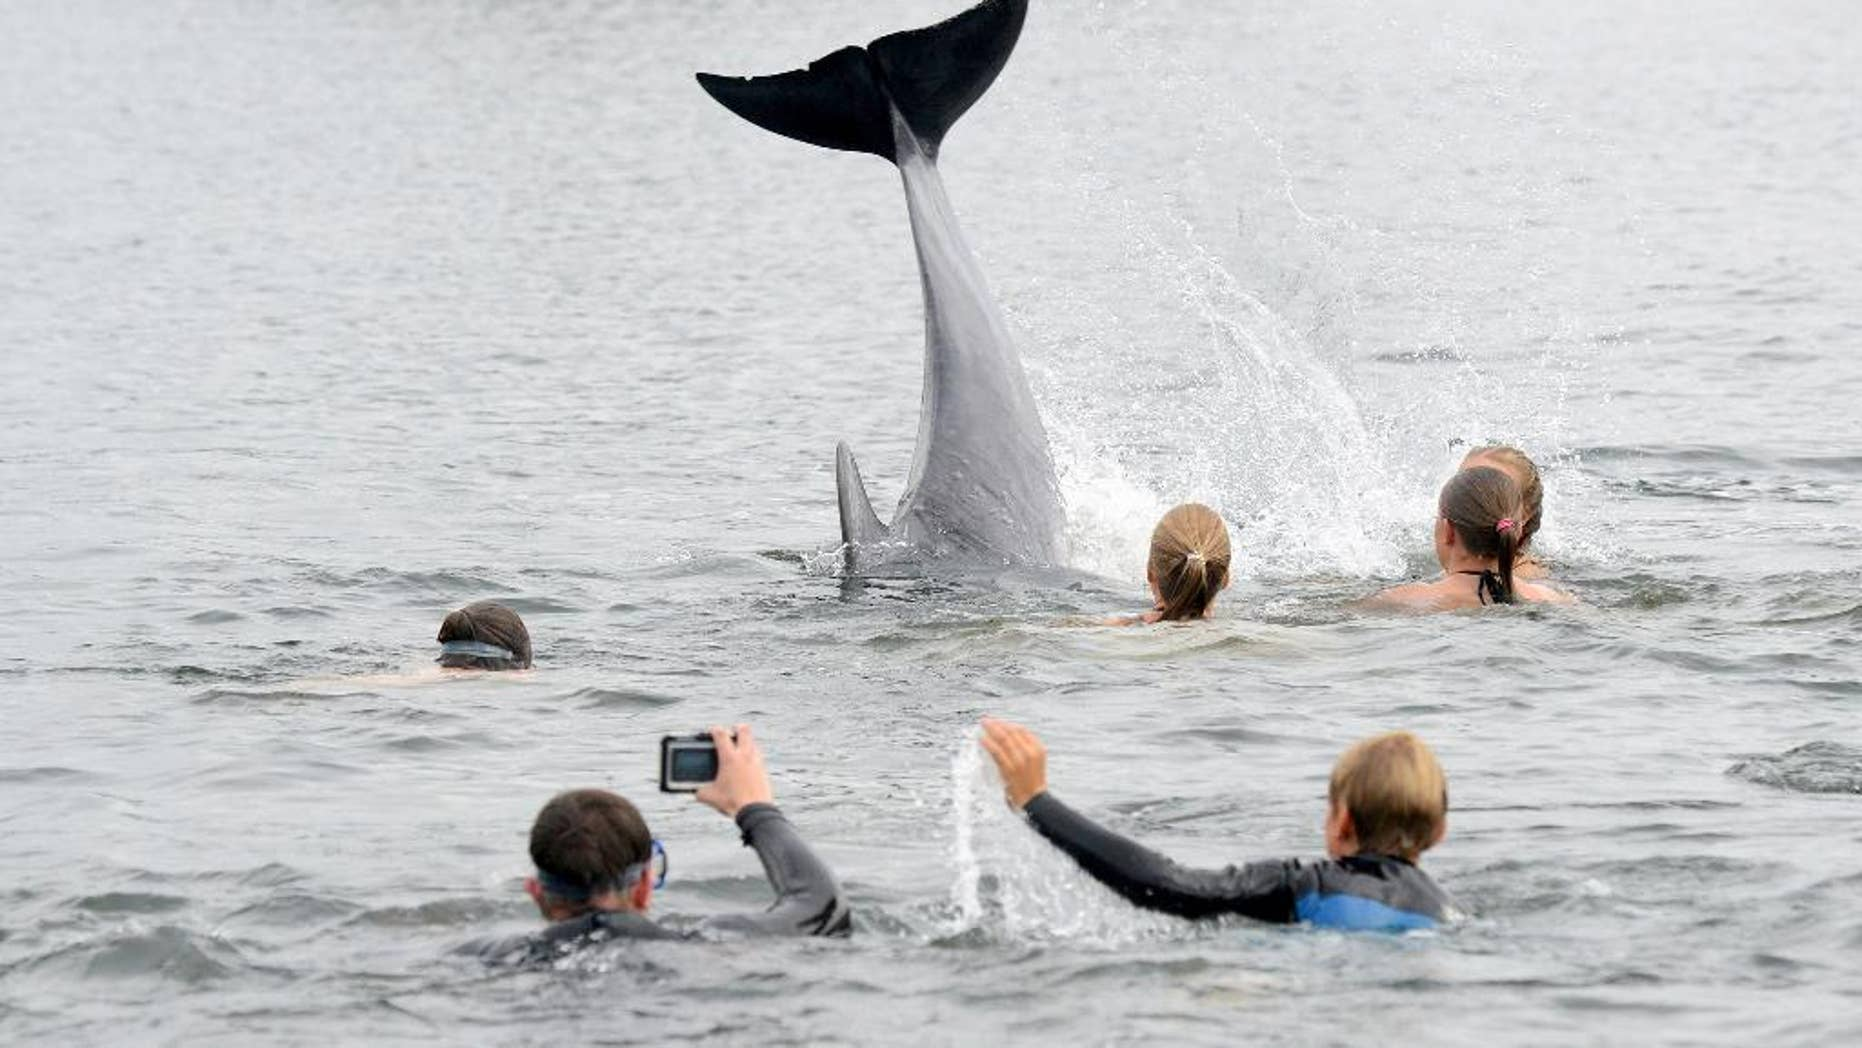 In this Sept. 11, 2016 picture  people take pictures of a dolphin  near Kiel, Germany. The dolphin is delighting bathers in northern Germany, but authorities are warning people not to get too close to the animal. The mammal appeared in Kieler Foerde inlet several days ago and has been swimming in and out of a canal that connects the Baltic Sea to the North Sea. Bathers have been swimming out to touch the dolphin, but police are warning that the animal may feel harassed by this and that swimmers mustn't get in the way of ships using the canal.  ( Thomas Eisenkraetzer/dpa via AP)